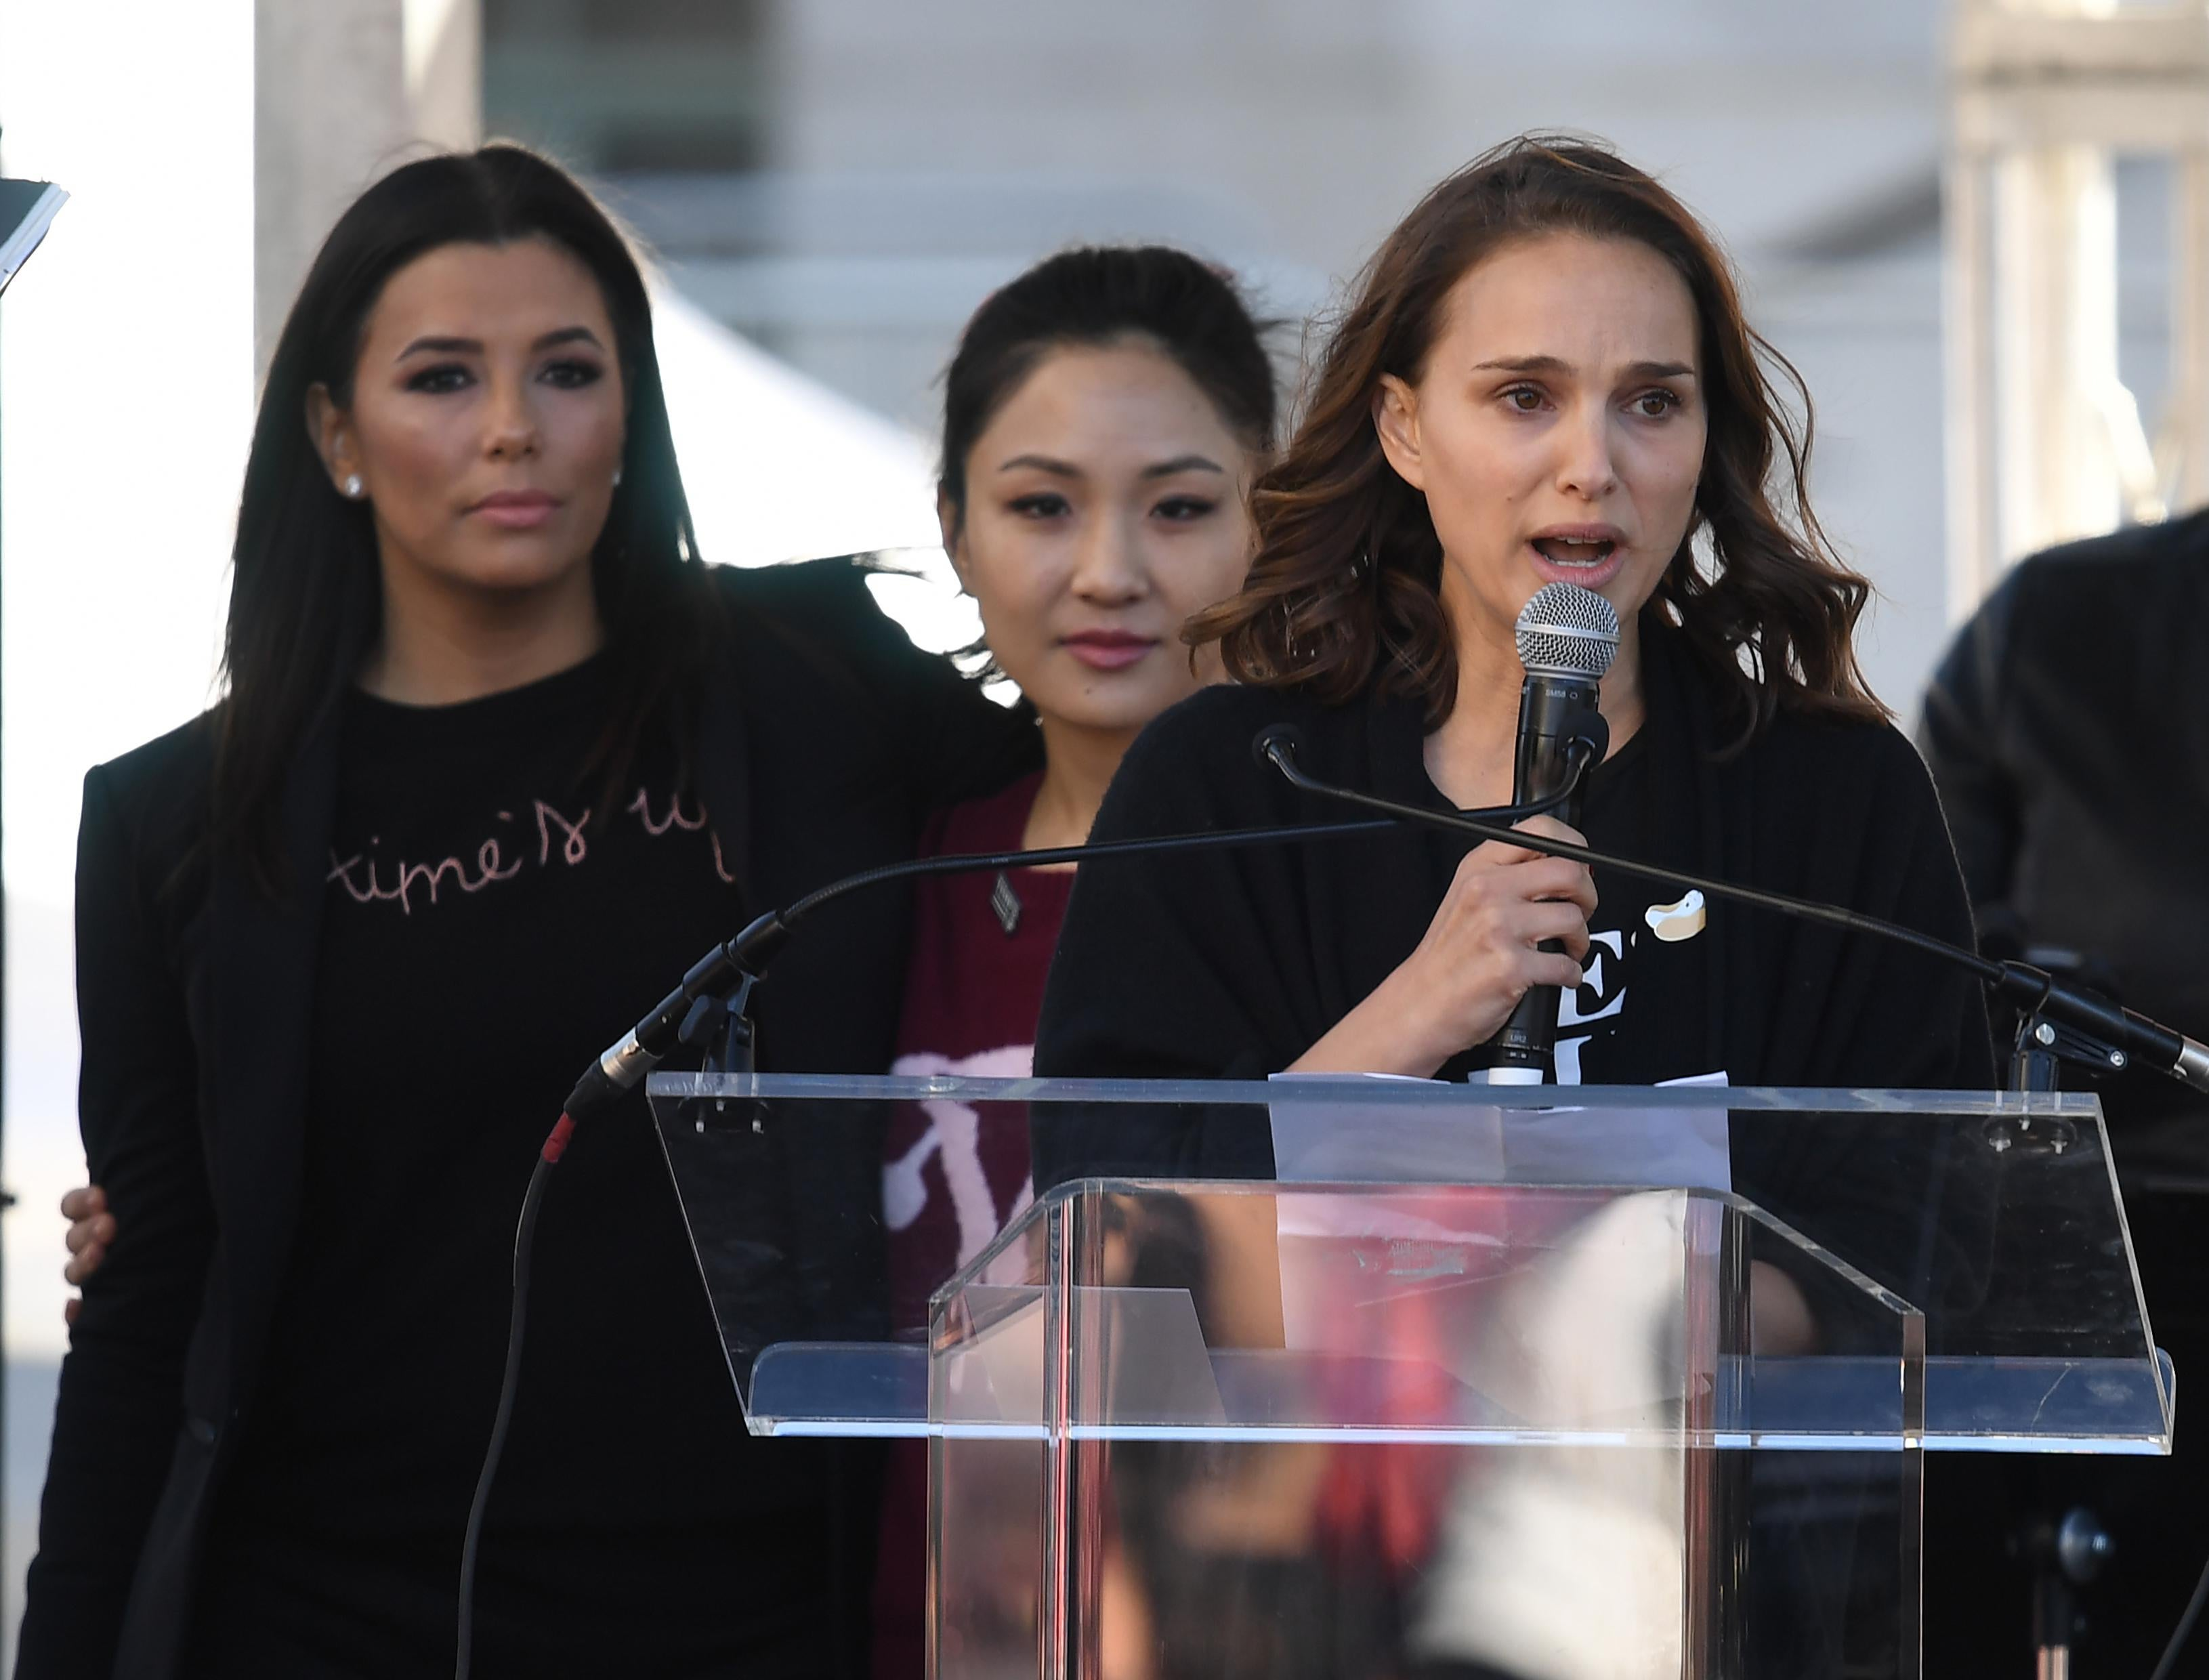 Natalie Portman speaks at a podium while actors Eva Longoria and Constance Wu stand behind her.